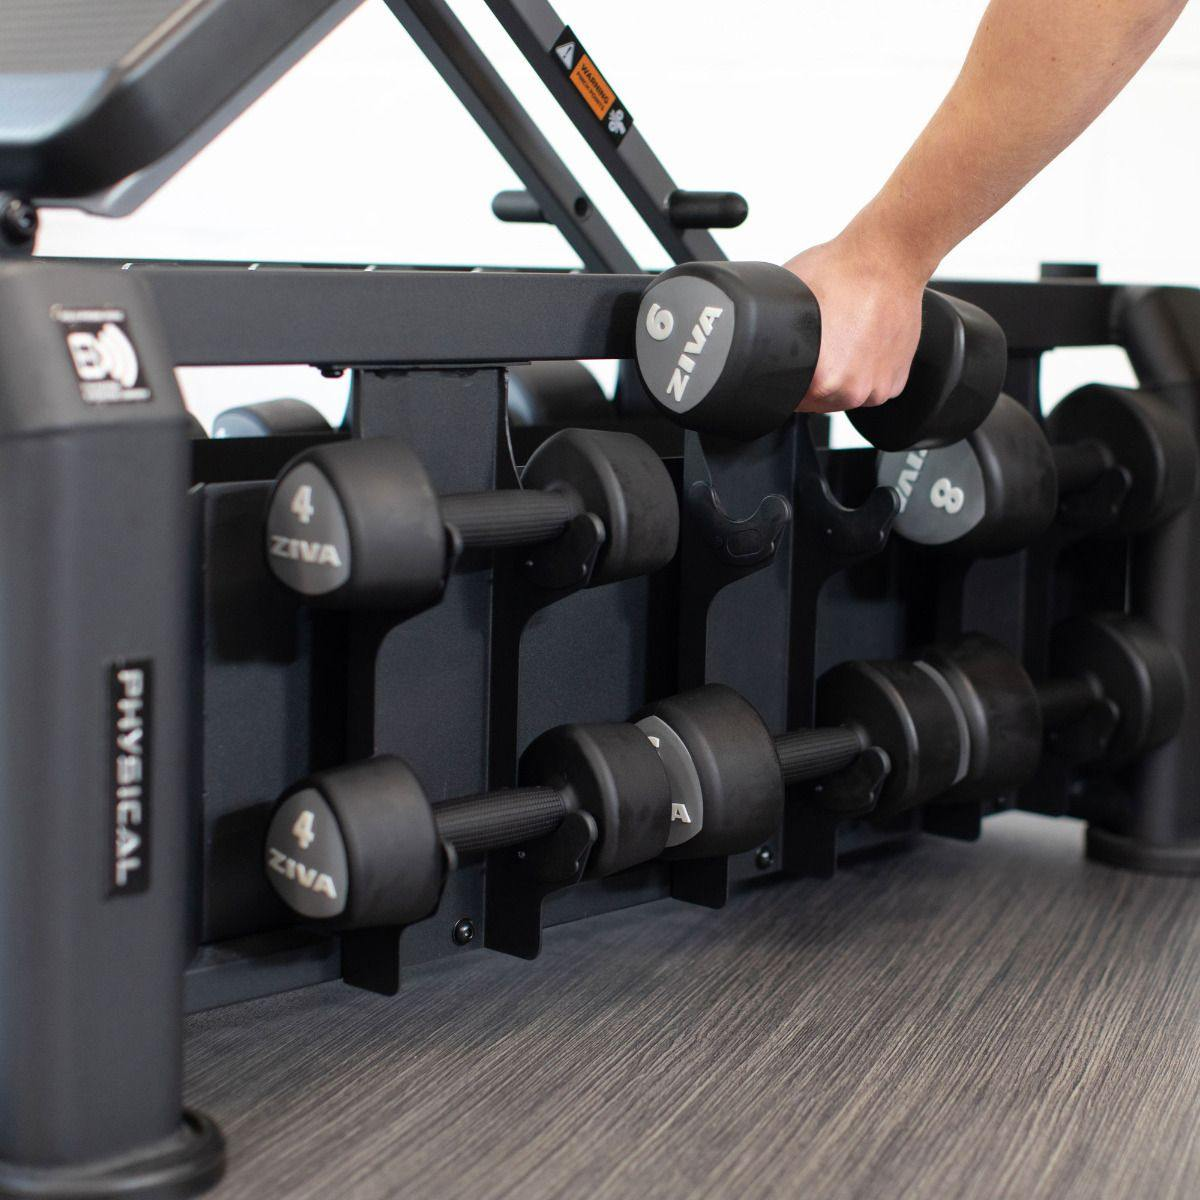 Physical Company Evo Bench - Adjustable Bench With Storage